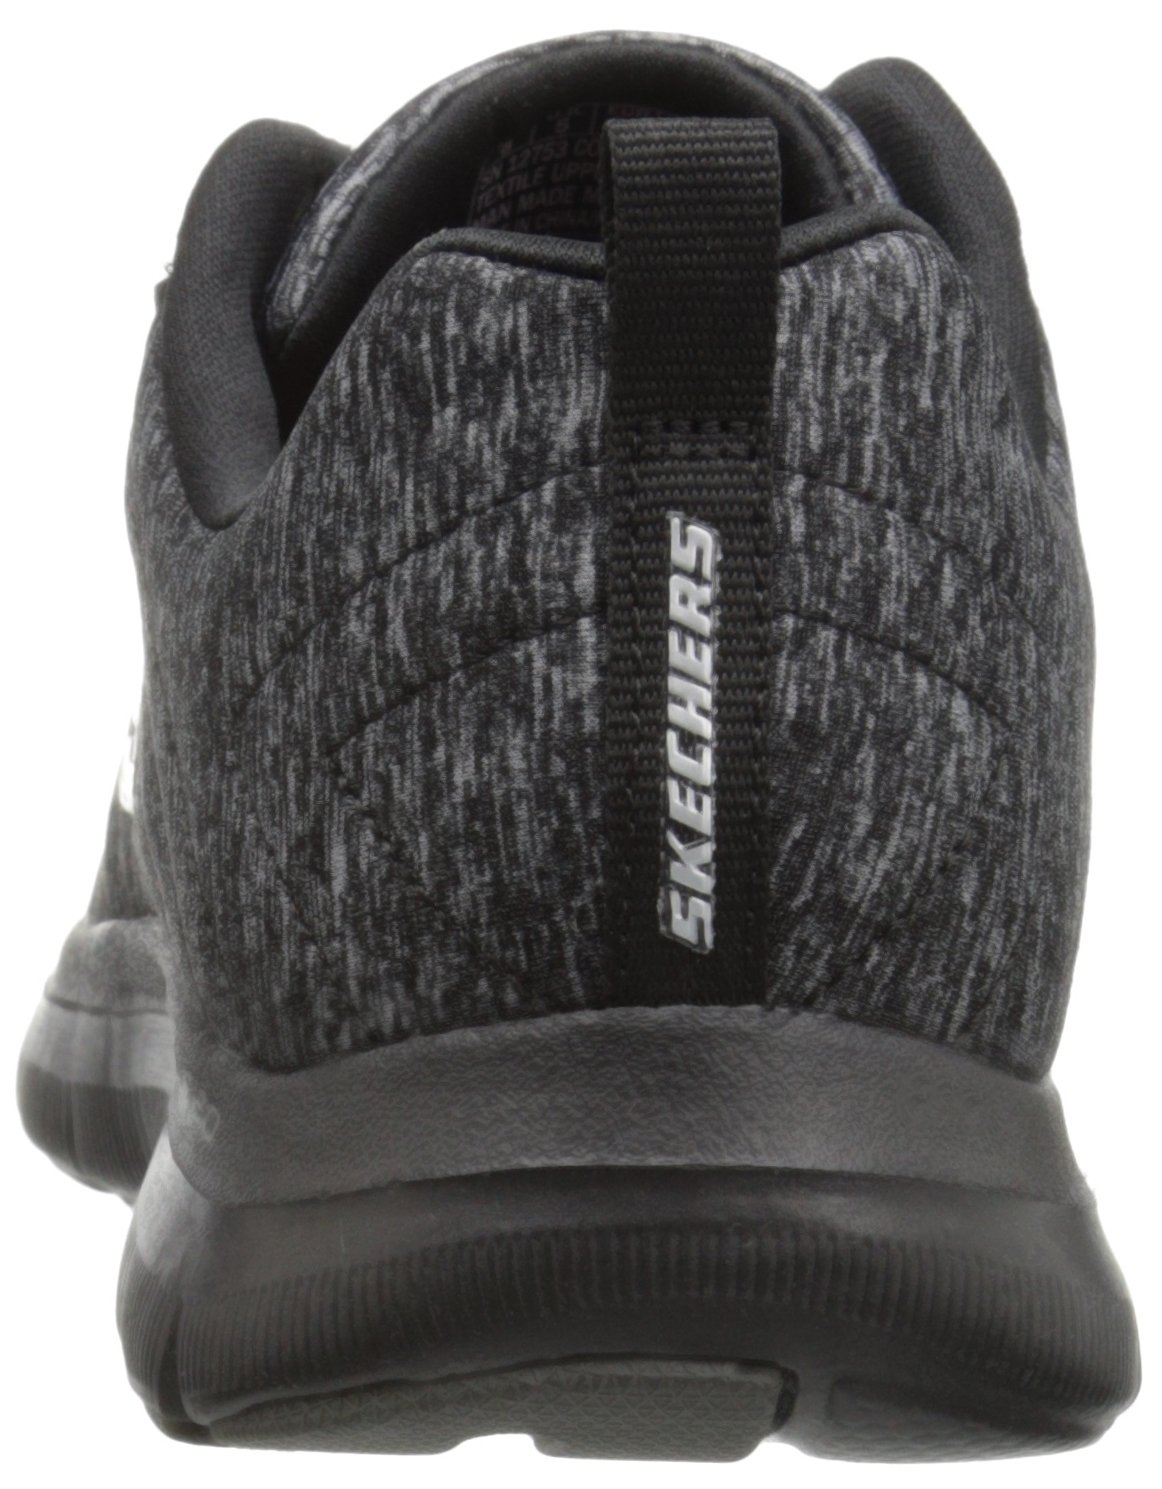 Skechers Women's Flex Appeal 2.0 Sneaker B01AHK4ZX0 6 B(M) US|Black/Charcoal